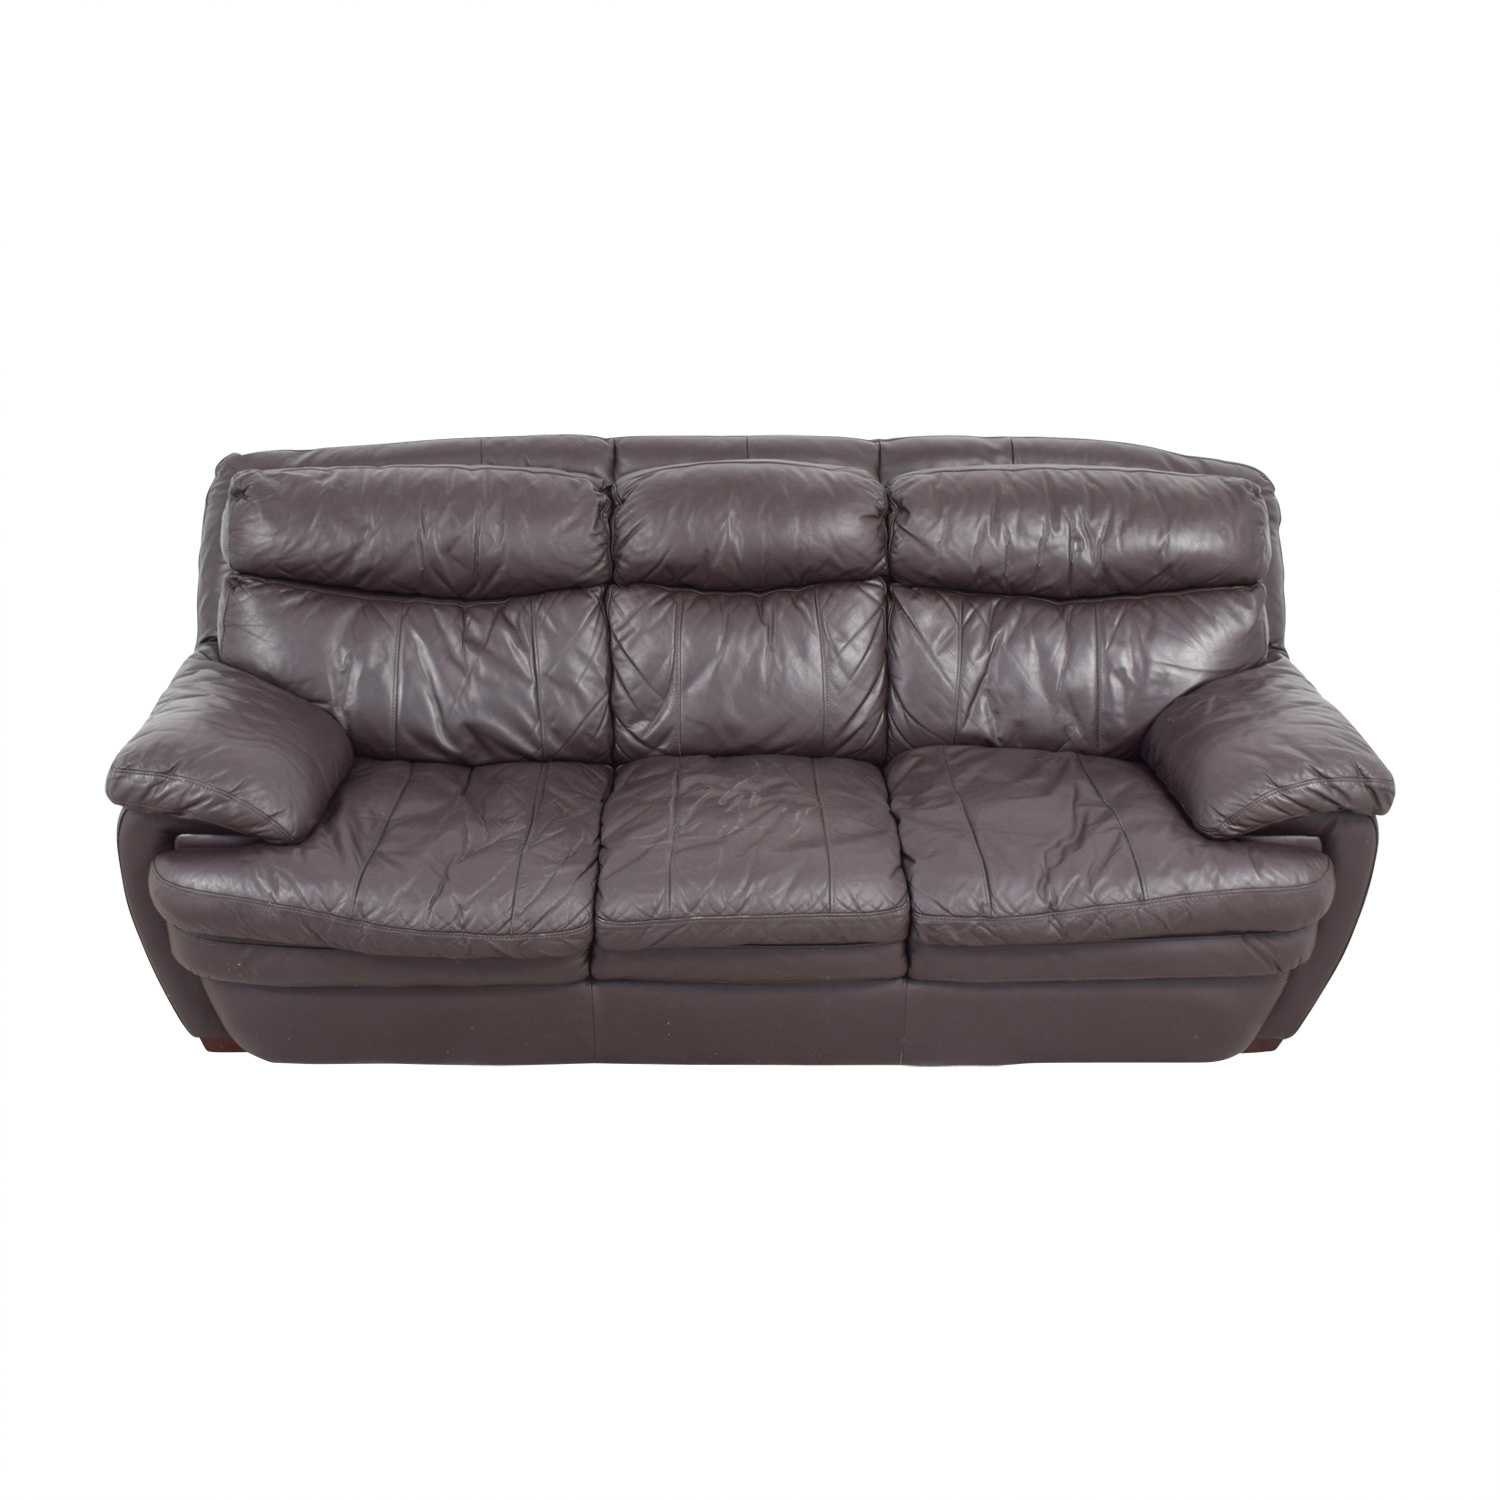 Bob's Furniture Three-Cushion Brown Leather Sofa Bob's Furniture